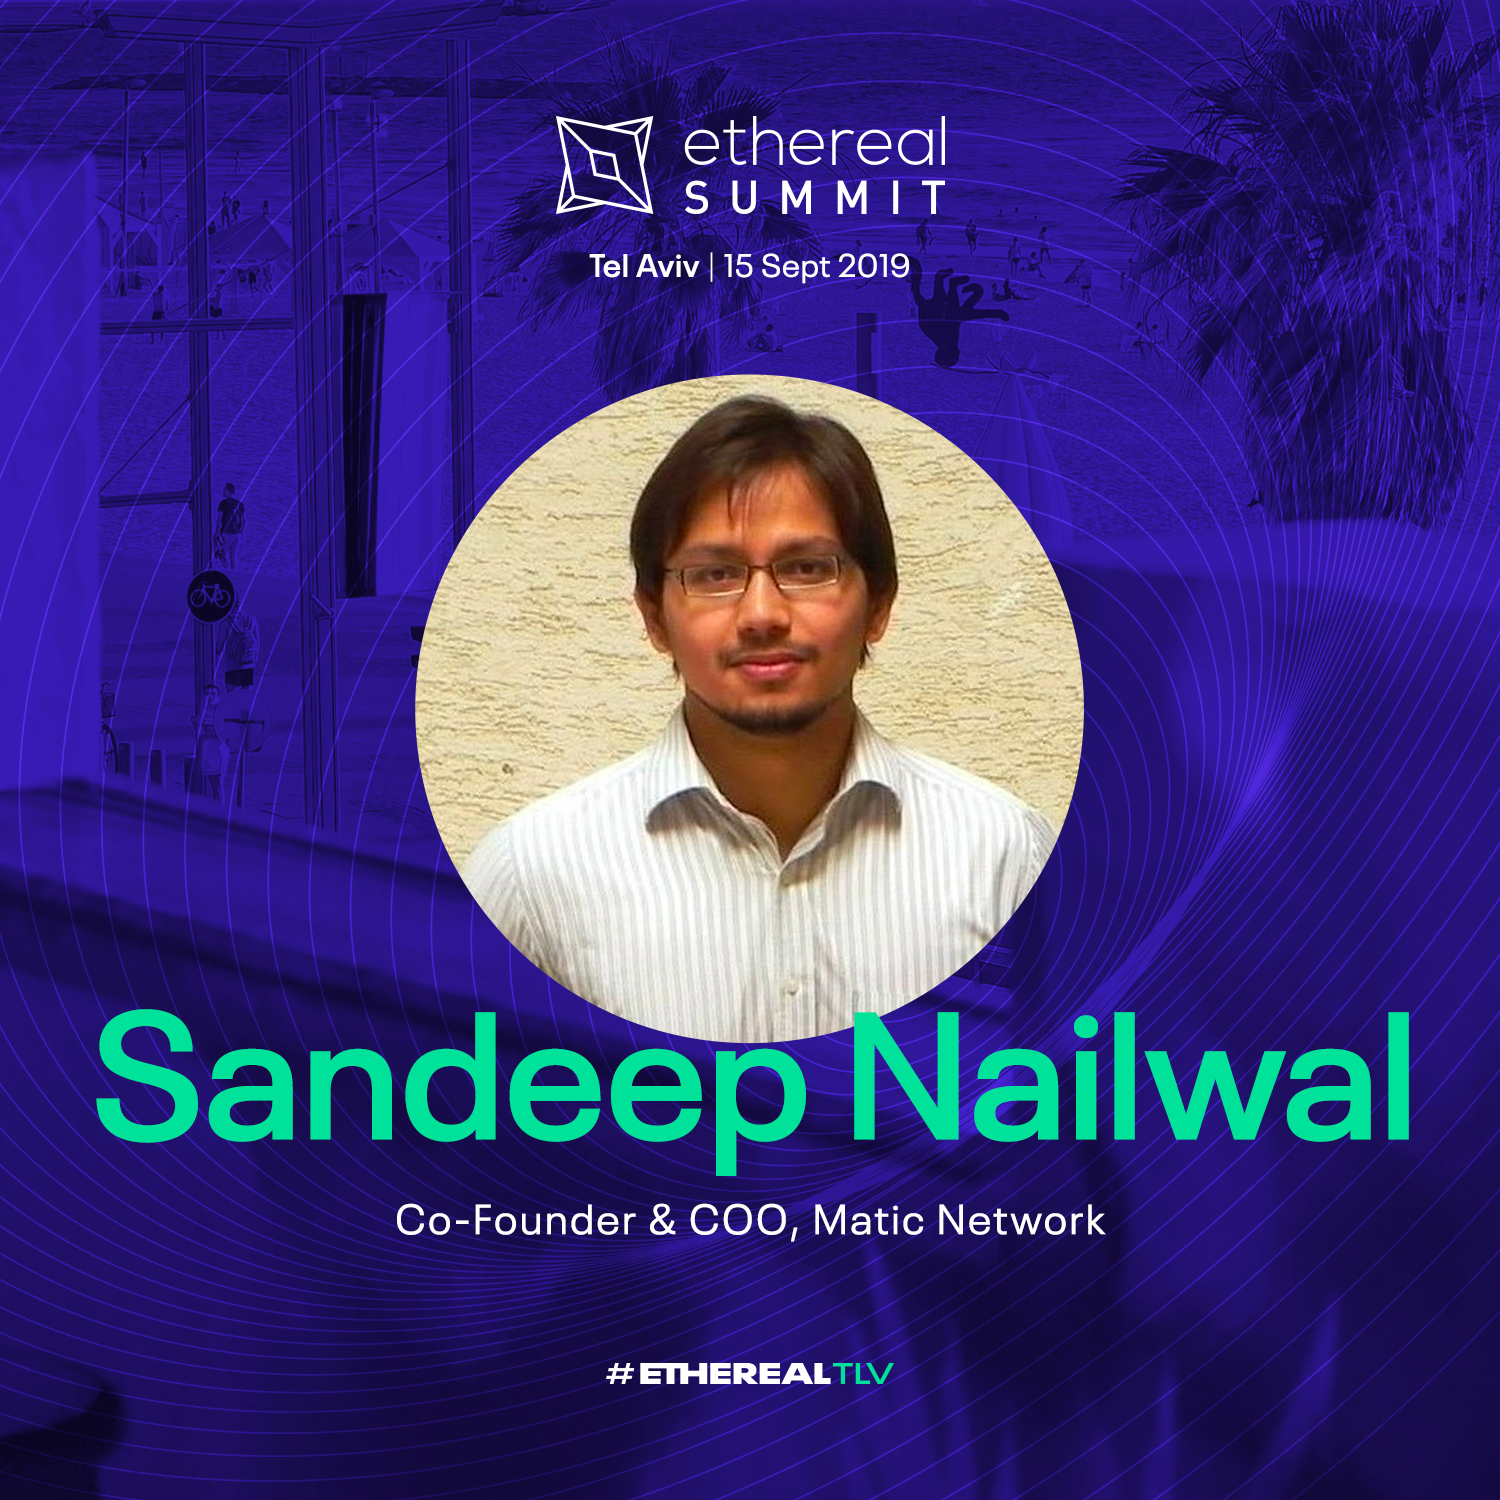 ethereal-tlv-2019-speaker-cards-square-sandeep-nailwal.png